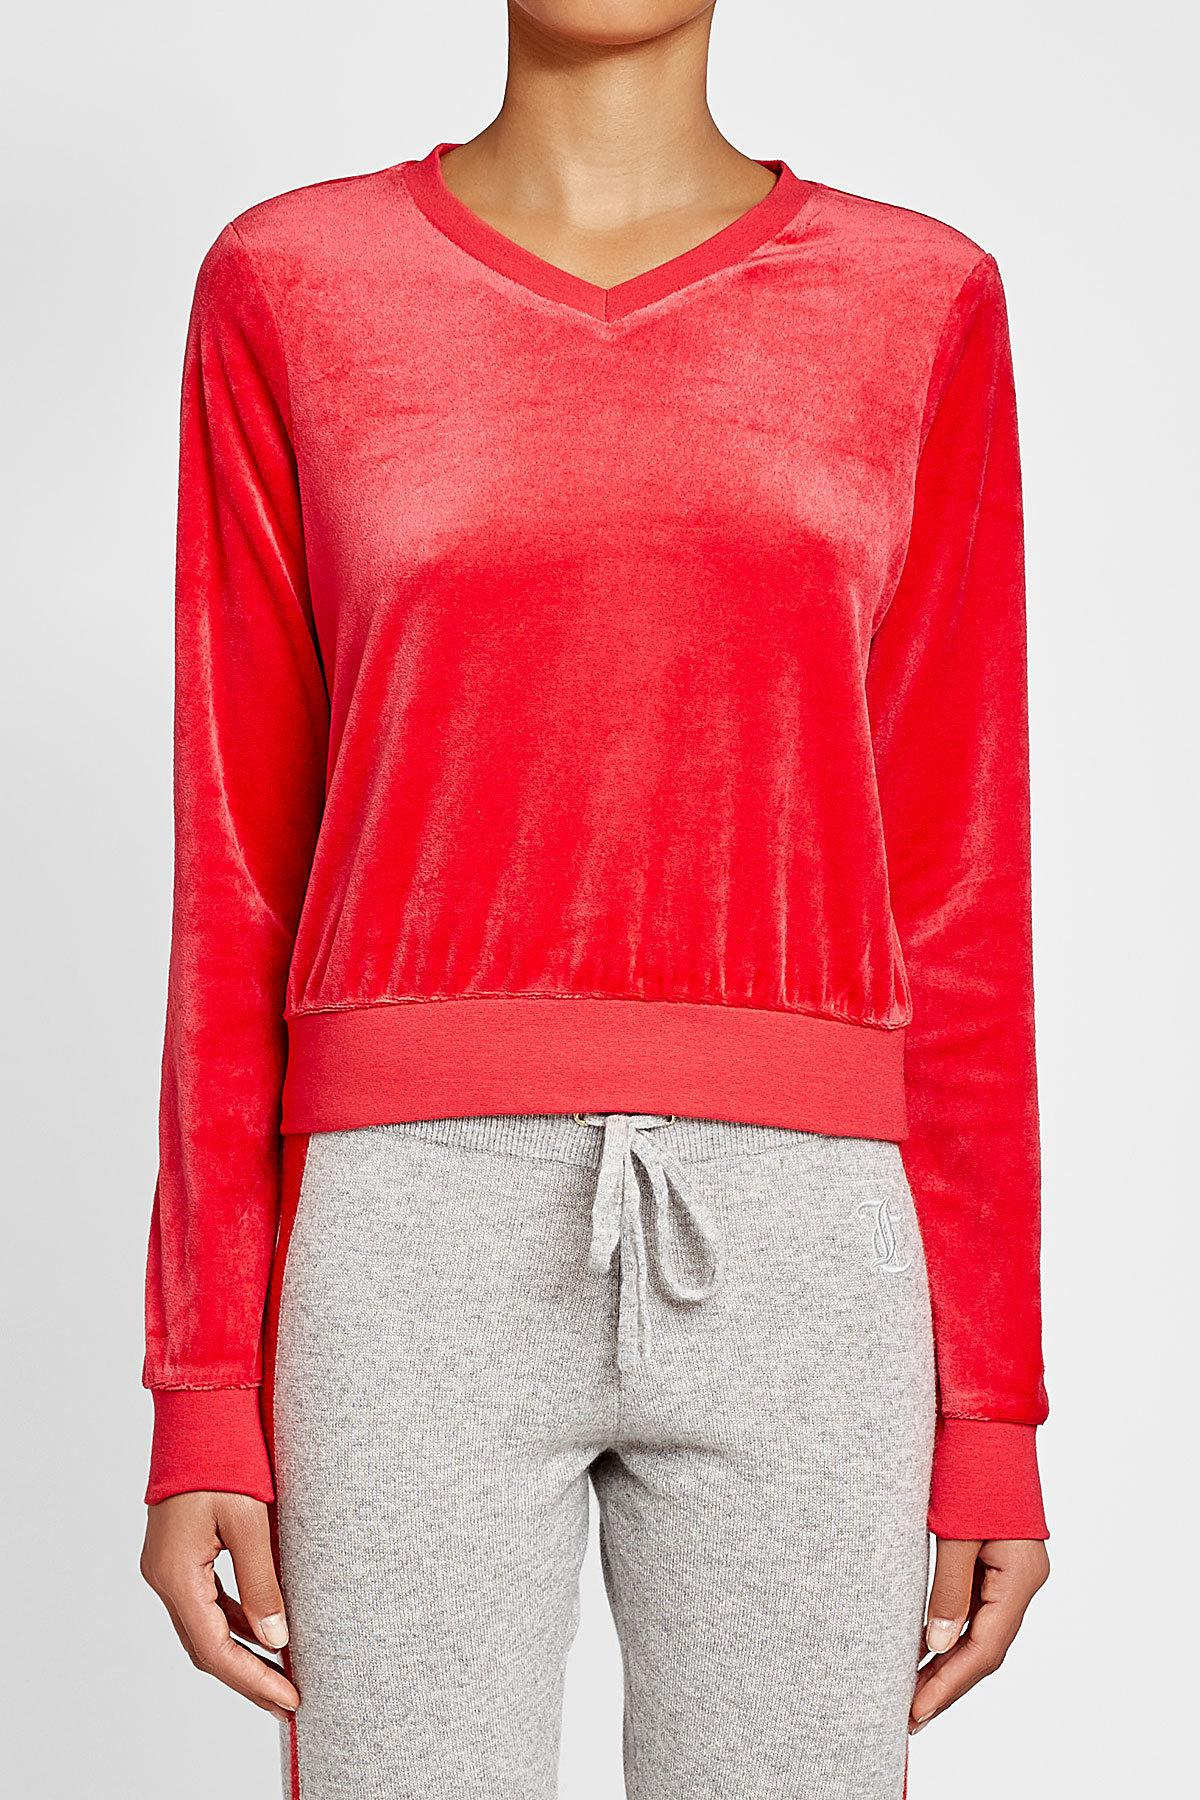 Juicy Couture Velour Top in Red - Lyst